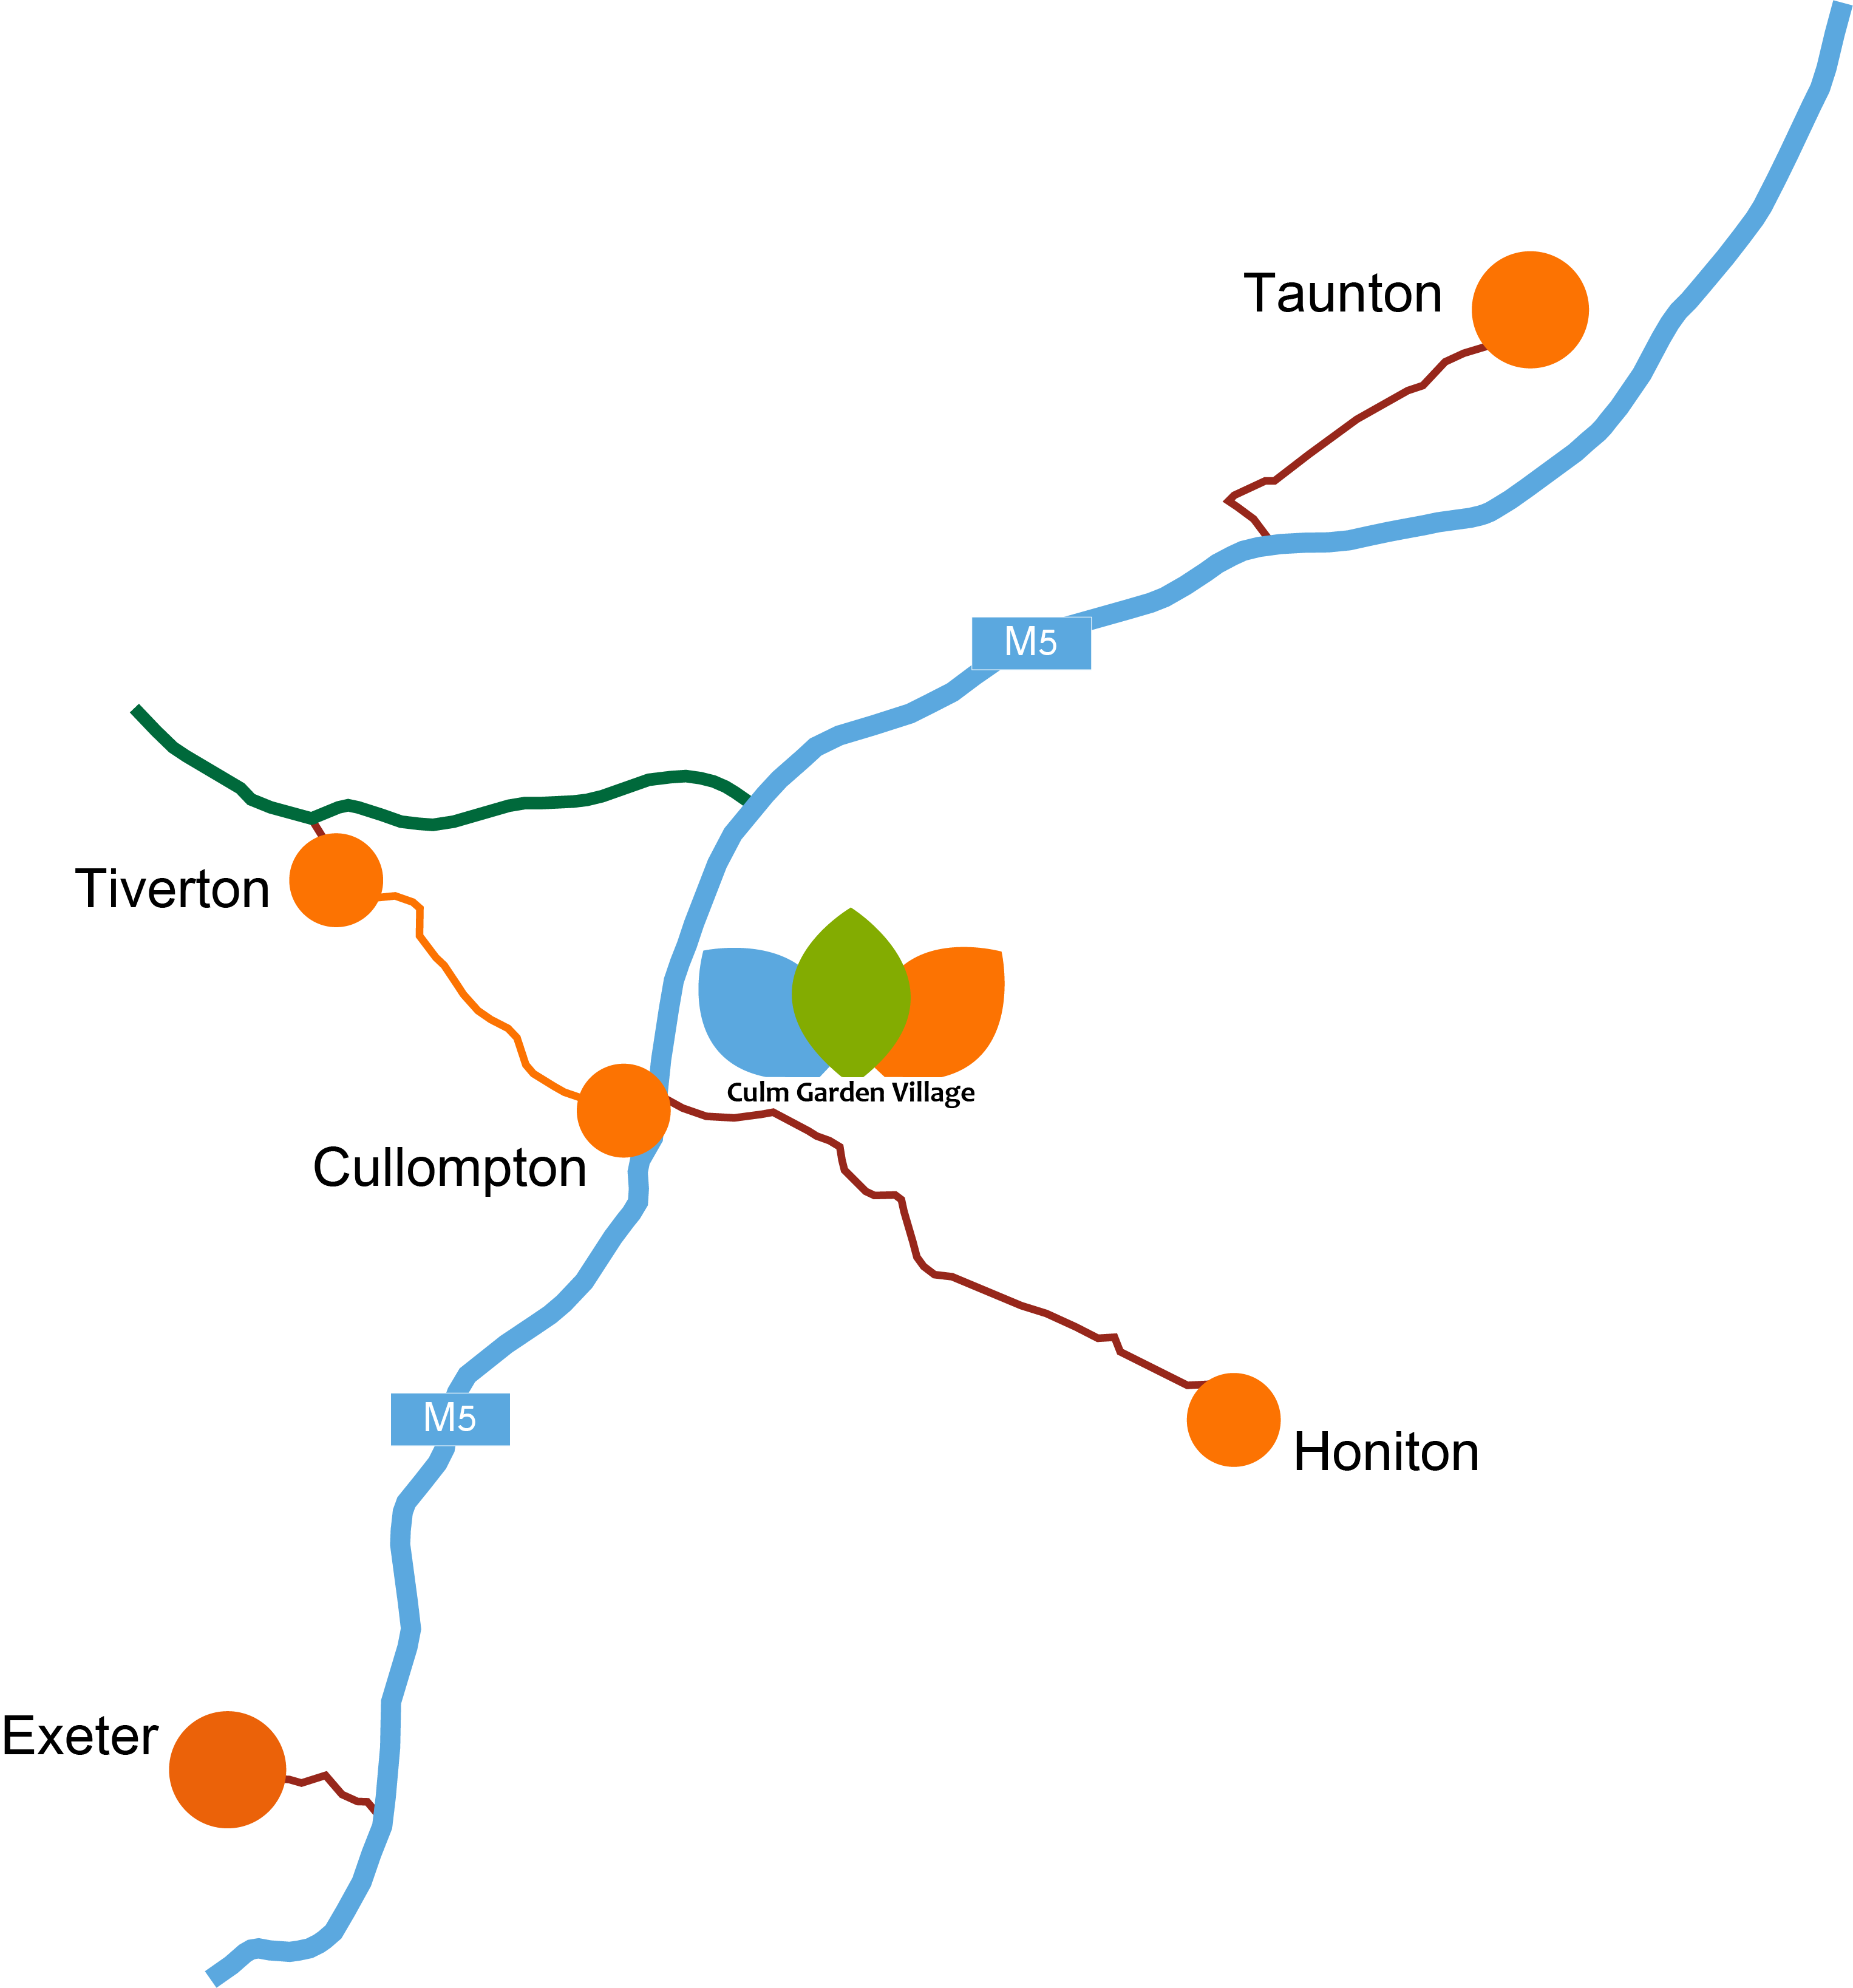 Map illustrating Culm Garden Village location in relation to the M5 motorway